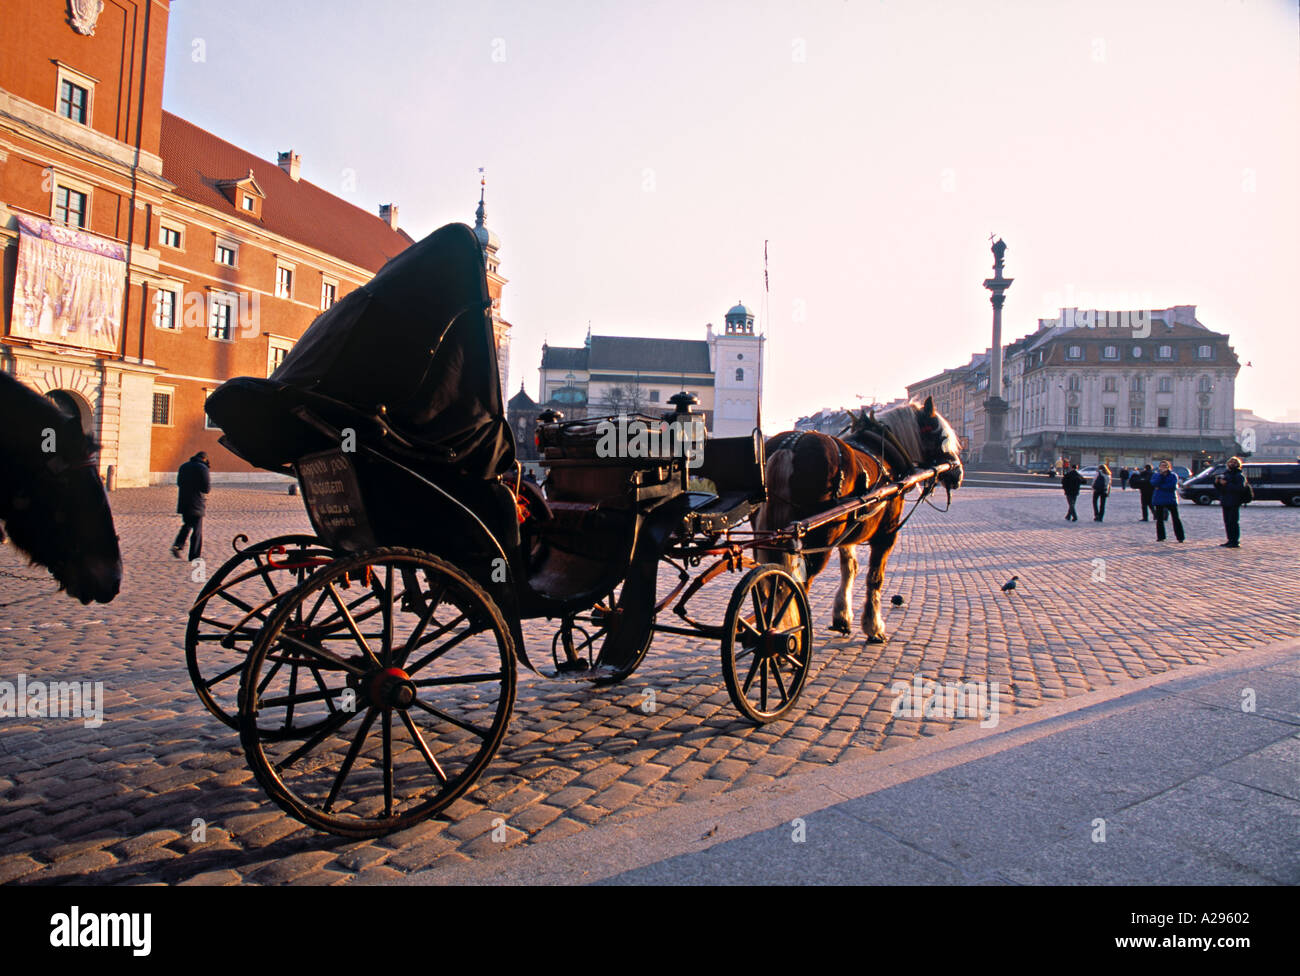 Castle Square, Warsaw, Poland - Stock Image